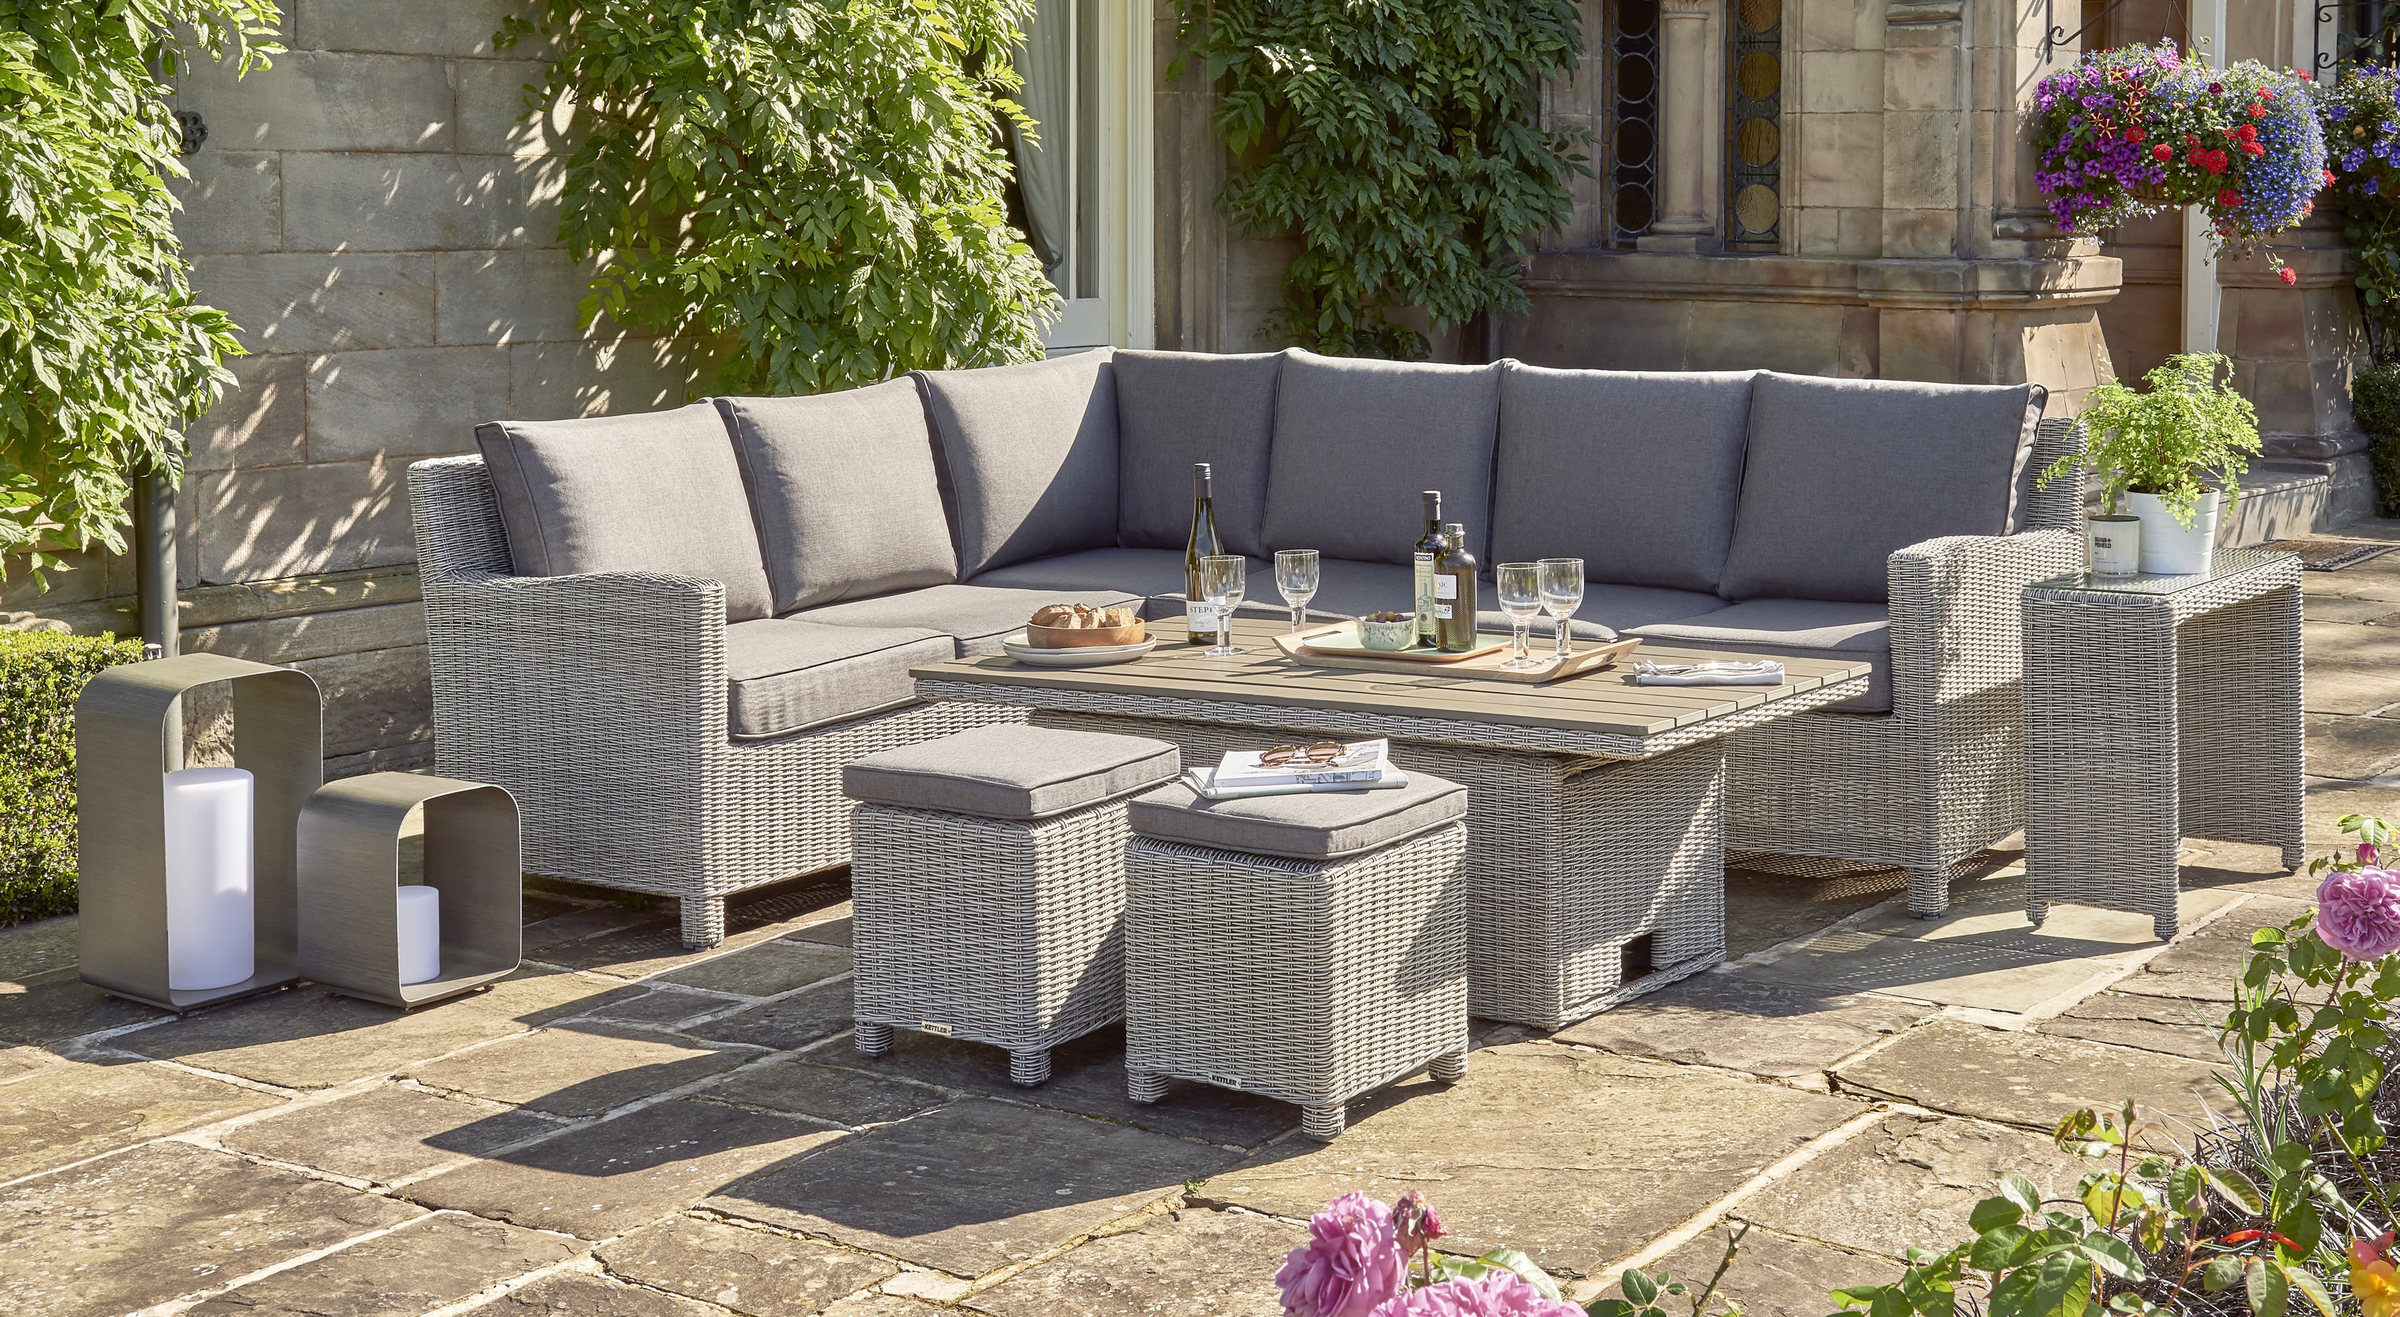 0193339 5510C Palma Rh Corner Set With 0193322 5510 Palma Sq Table Down And 0193311 5510 Side Table Lifestyle